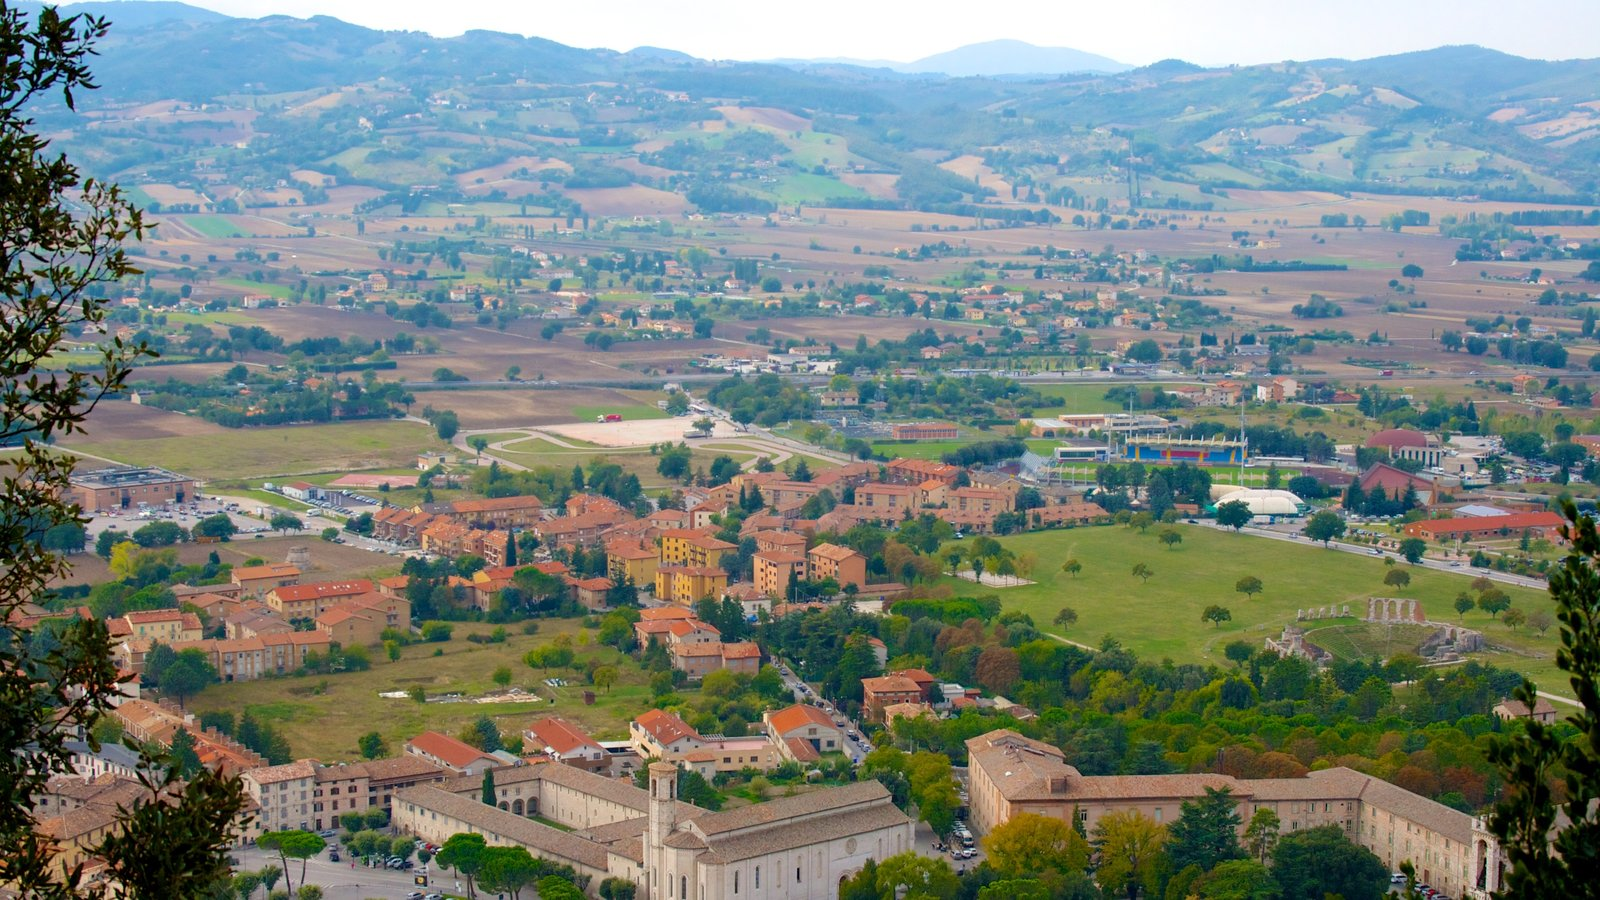 Gubbio showing a small town or village